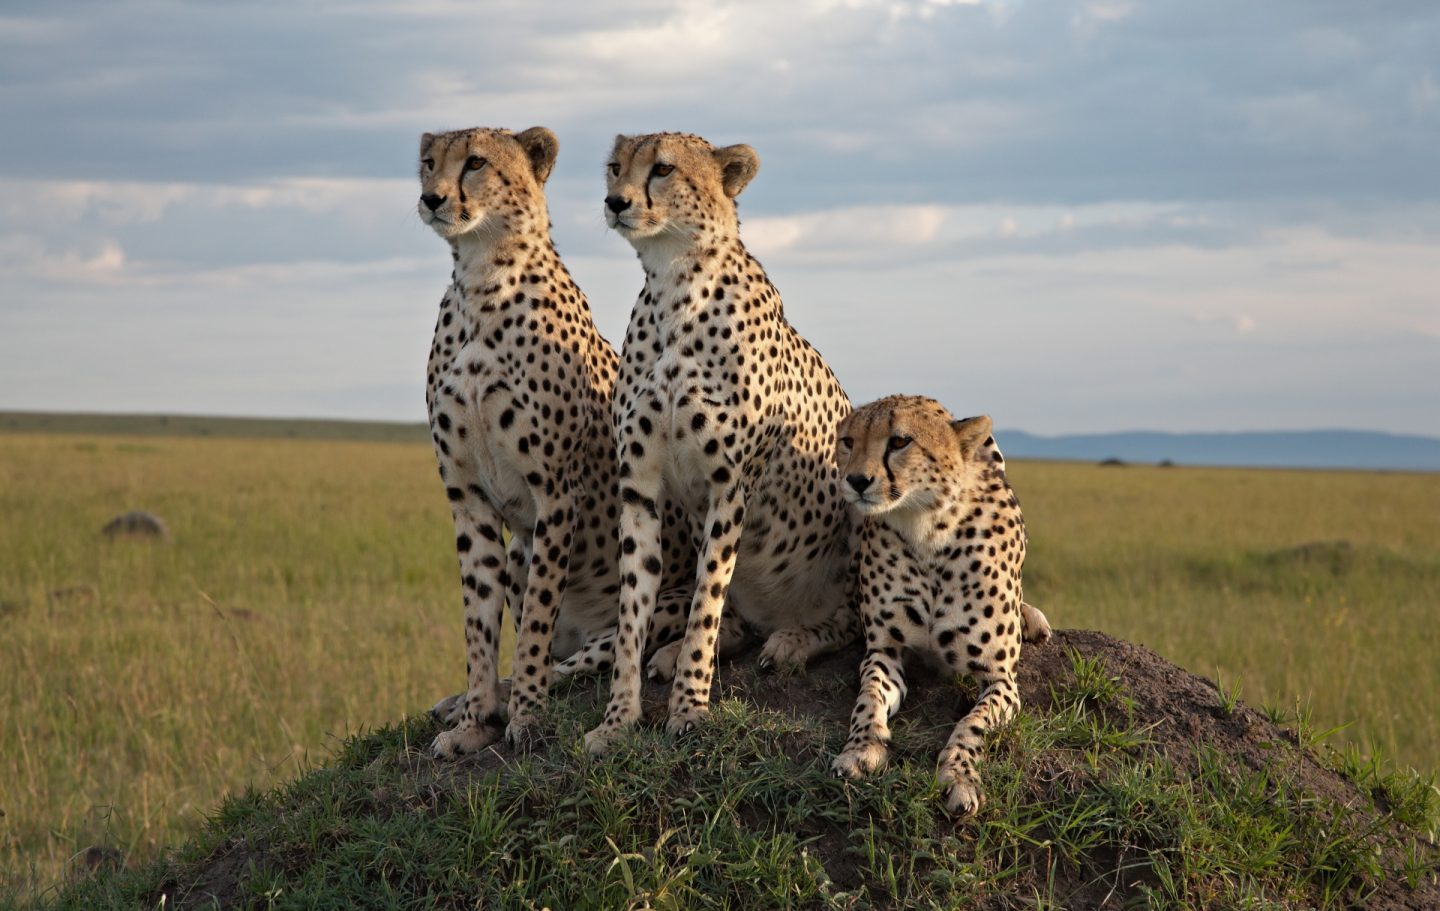 The Cheetah Brothers © Africat